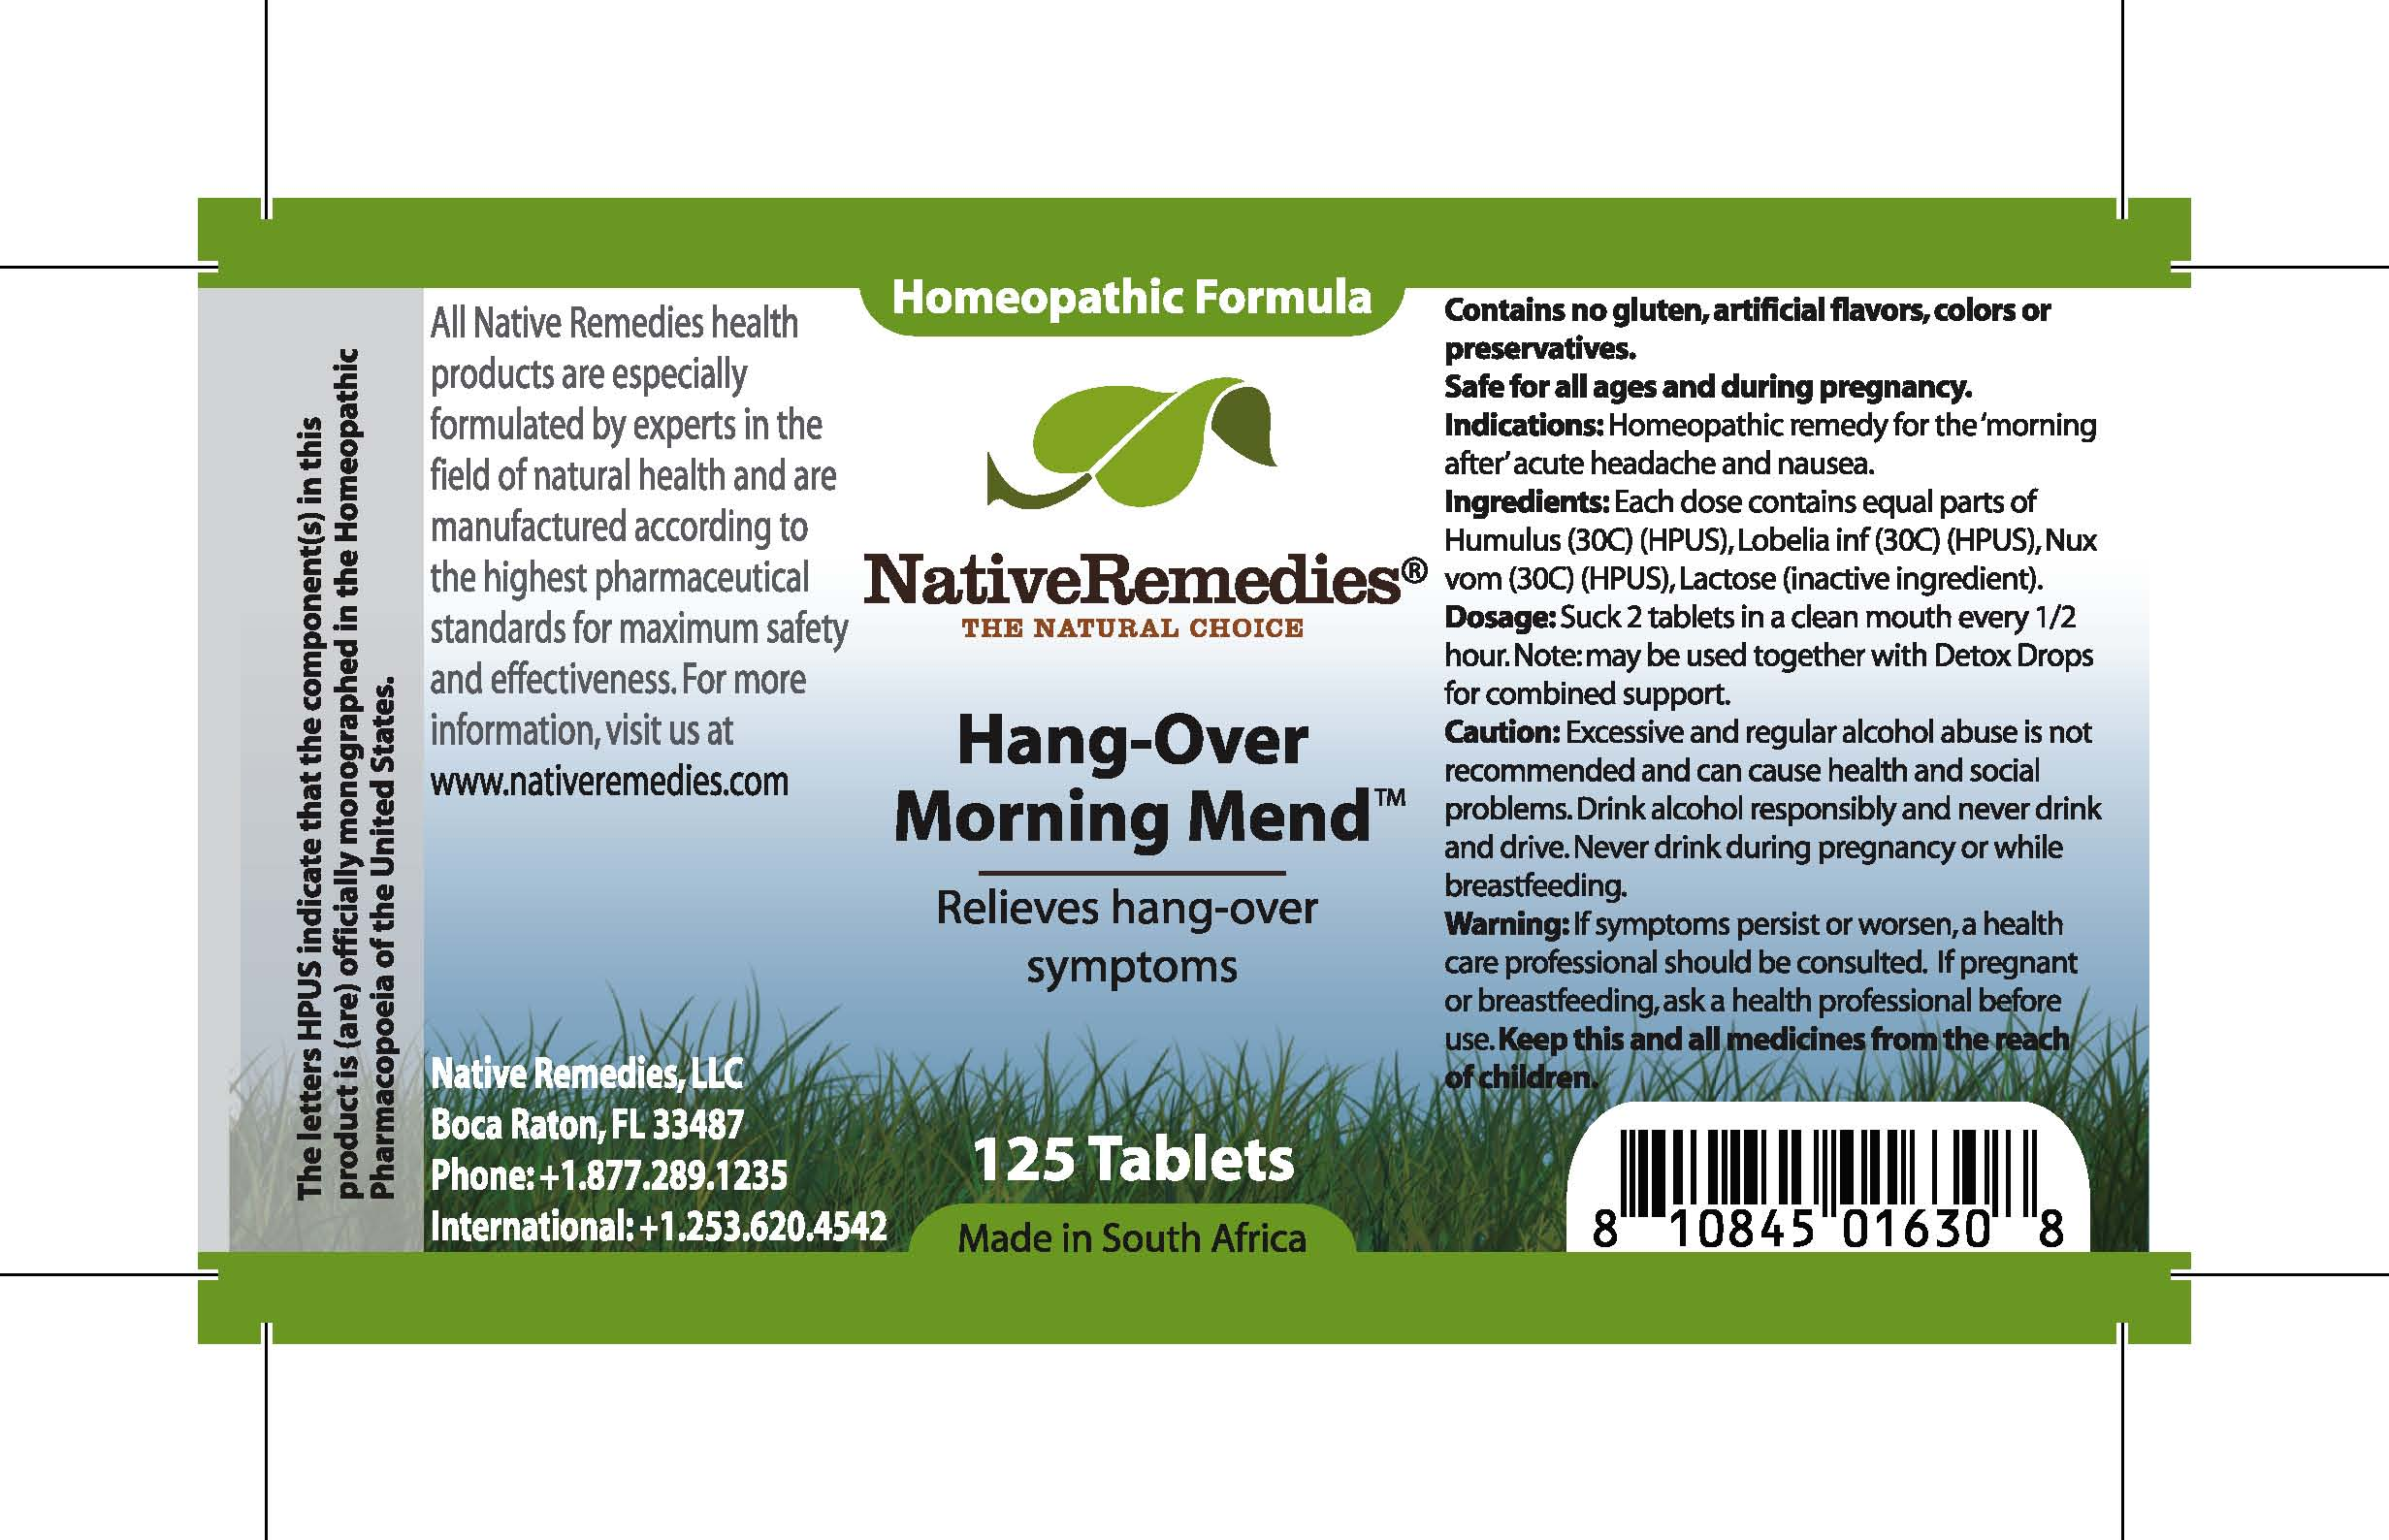 Hang-over Morning Mend (Humulus , Lobelia Inf , Nux Vom , Lactose ) Tablet [Feelgood Health]